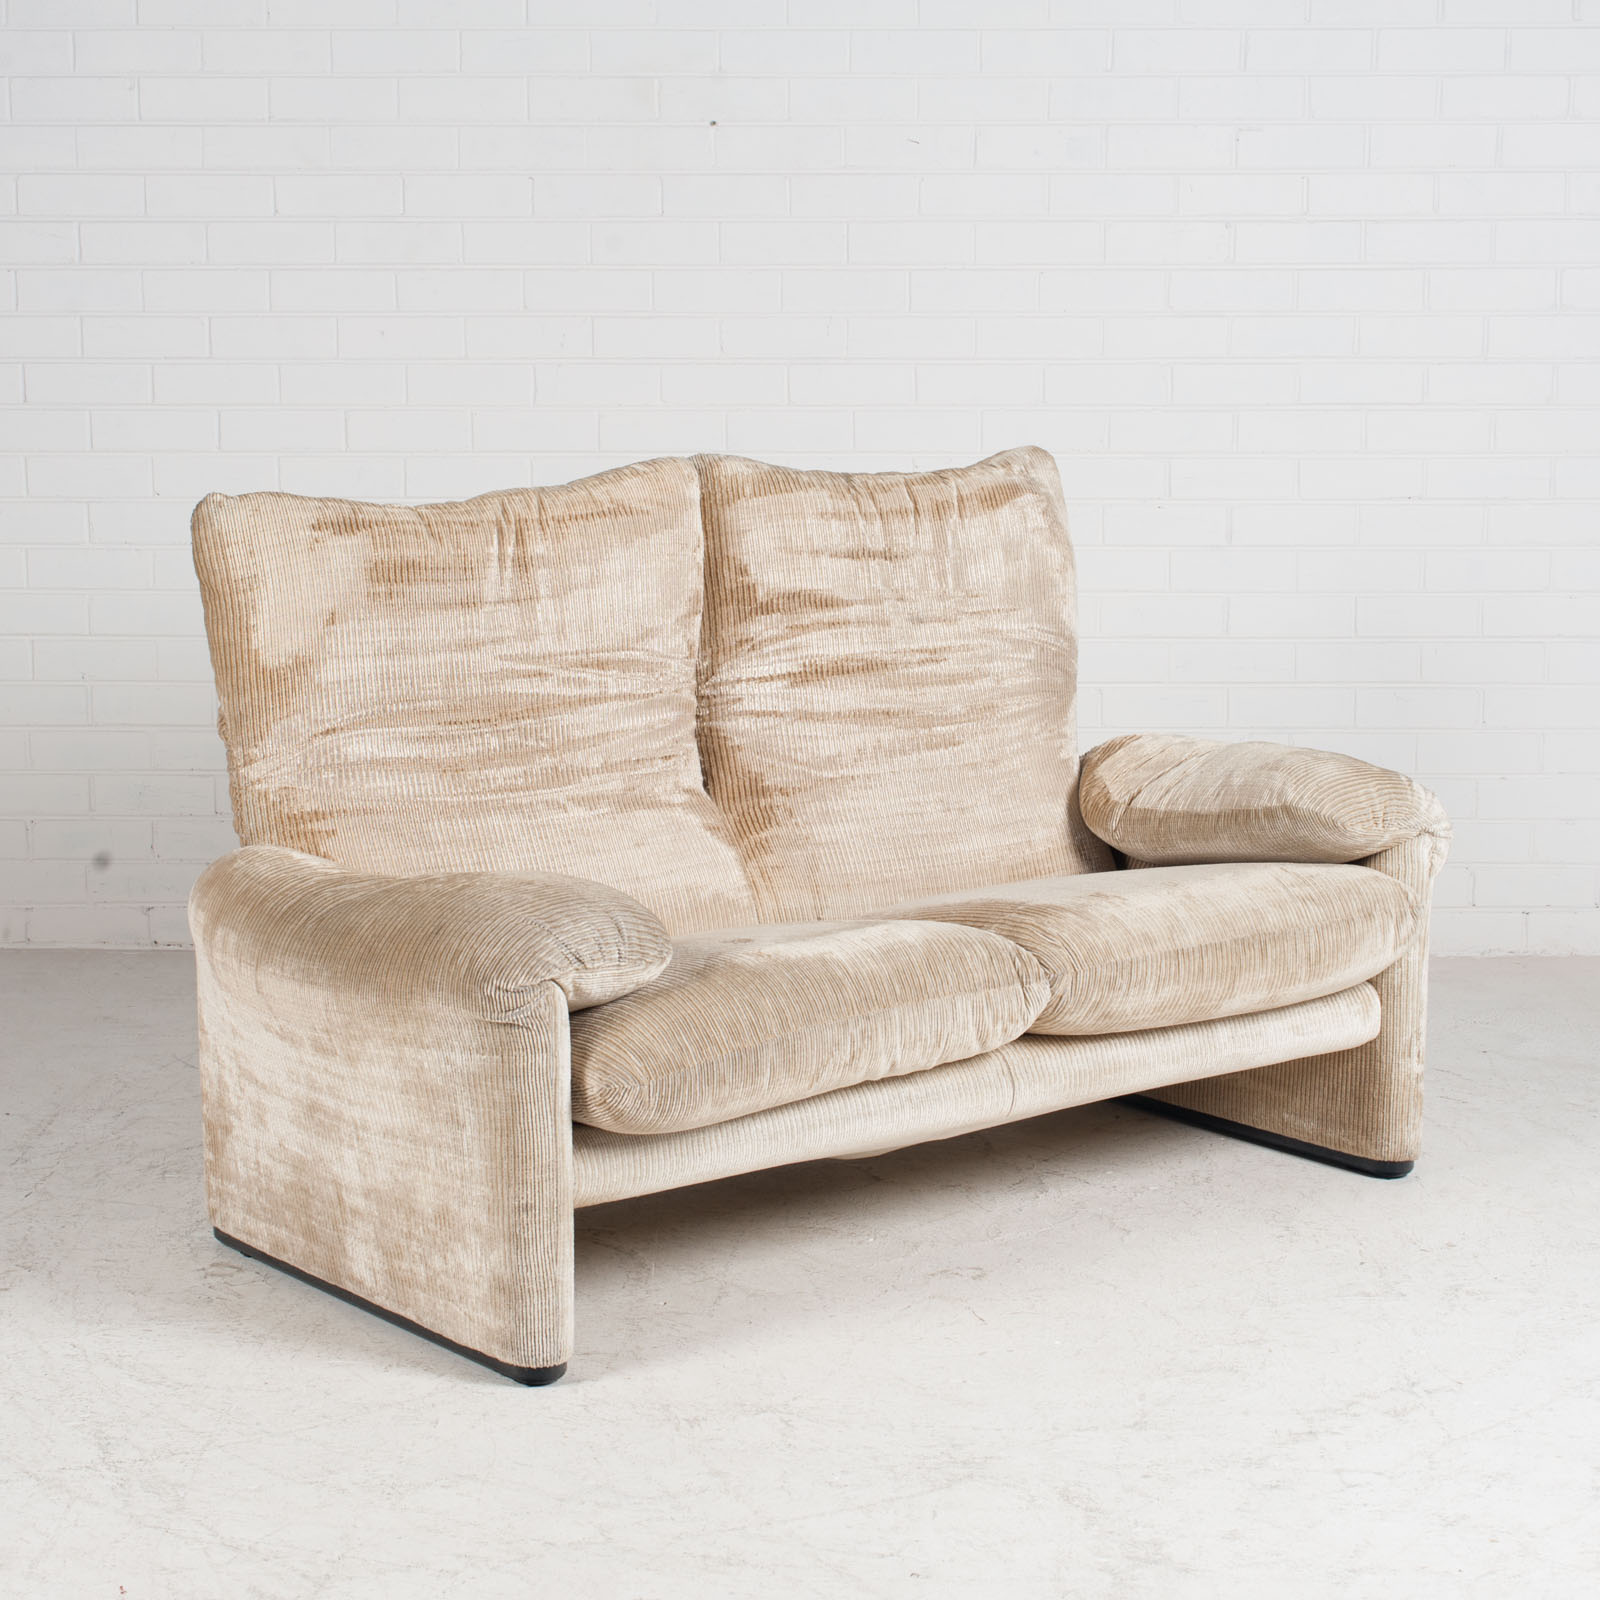 Maralunga 2 Seat Sofa By Vico Magistretti For Cassina In Original Upholstery 1970s Italy 03